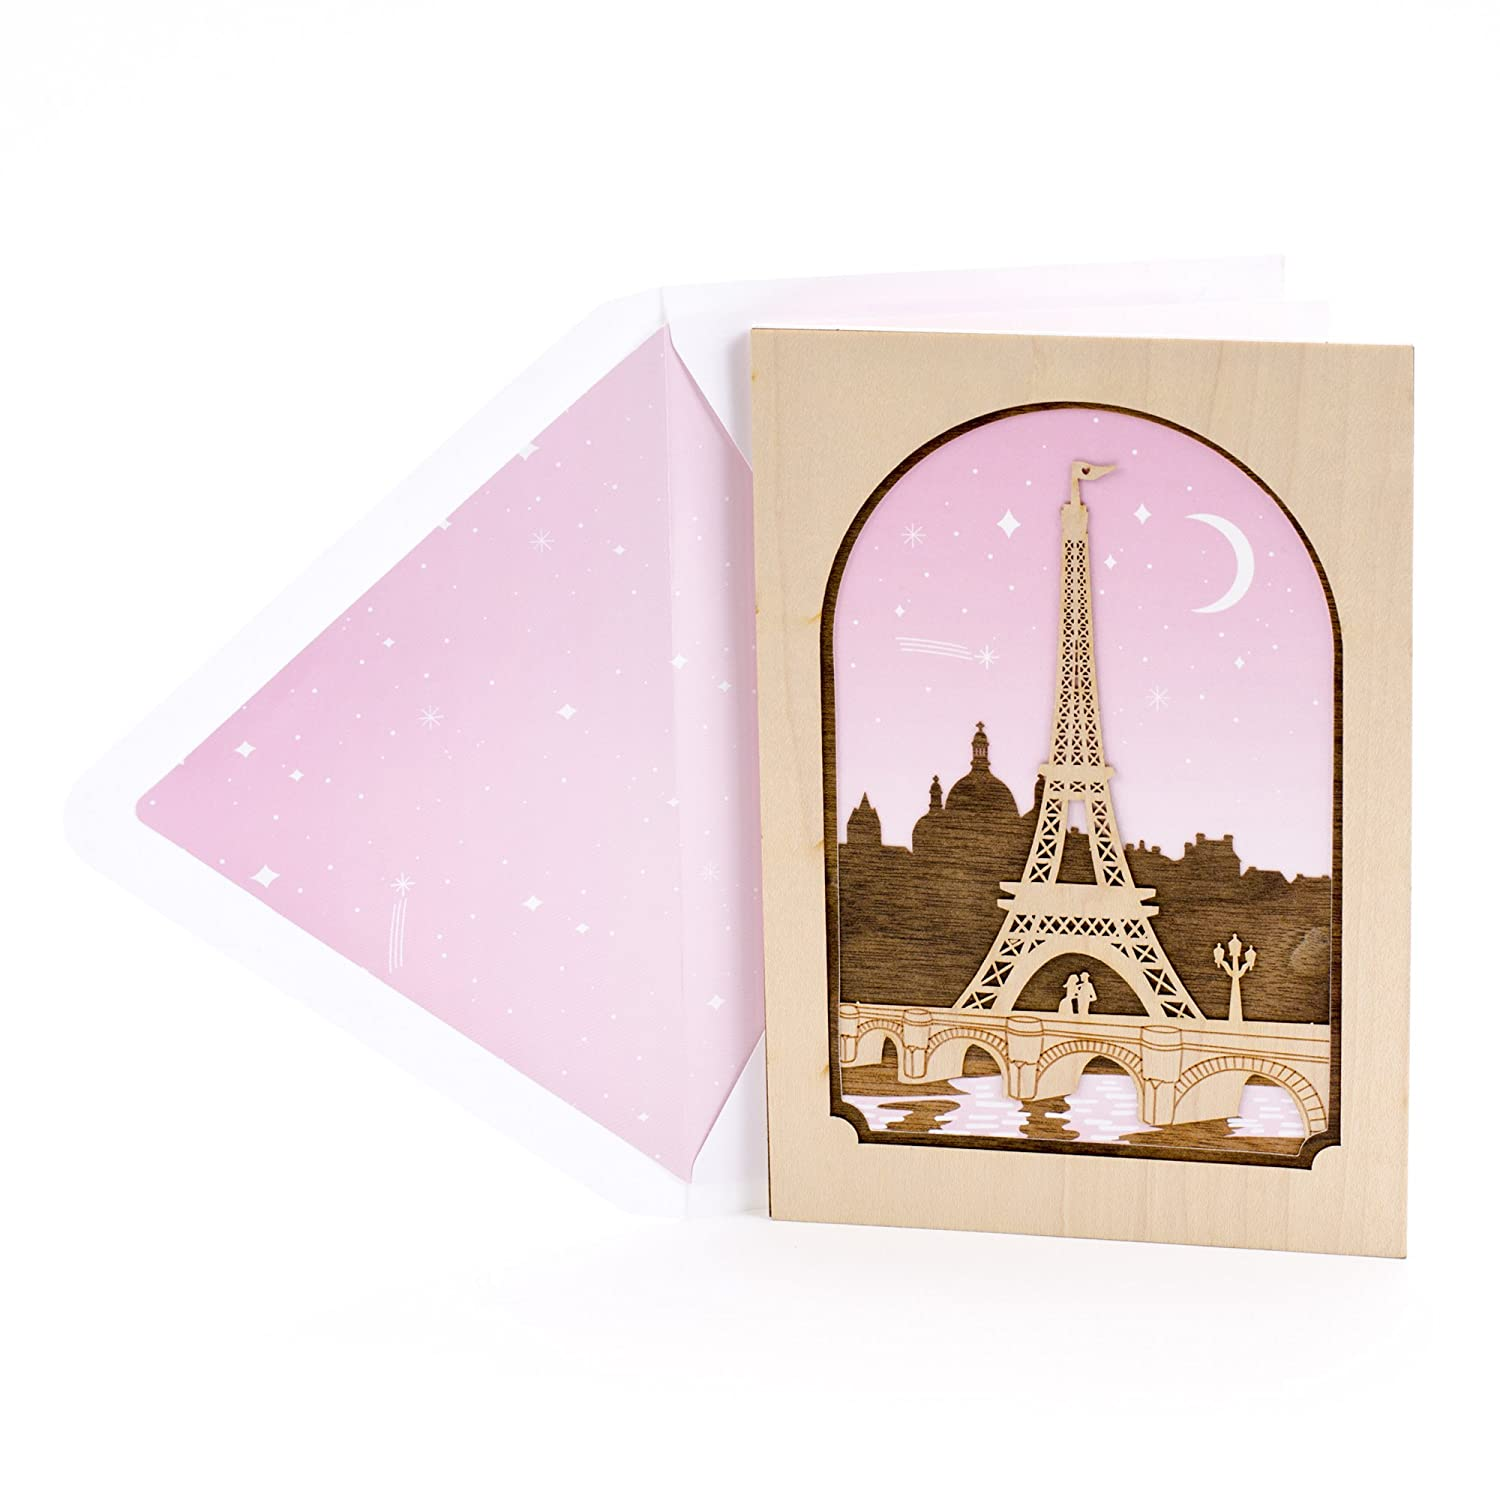 Amazon hallmark signature valentines day greeting card for amazon hallmark signature valentines day greeting card for romantic partner laser cut wood eiffel tower office products kristyandbryce Image collections